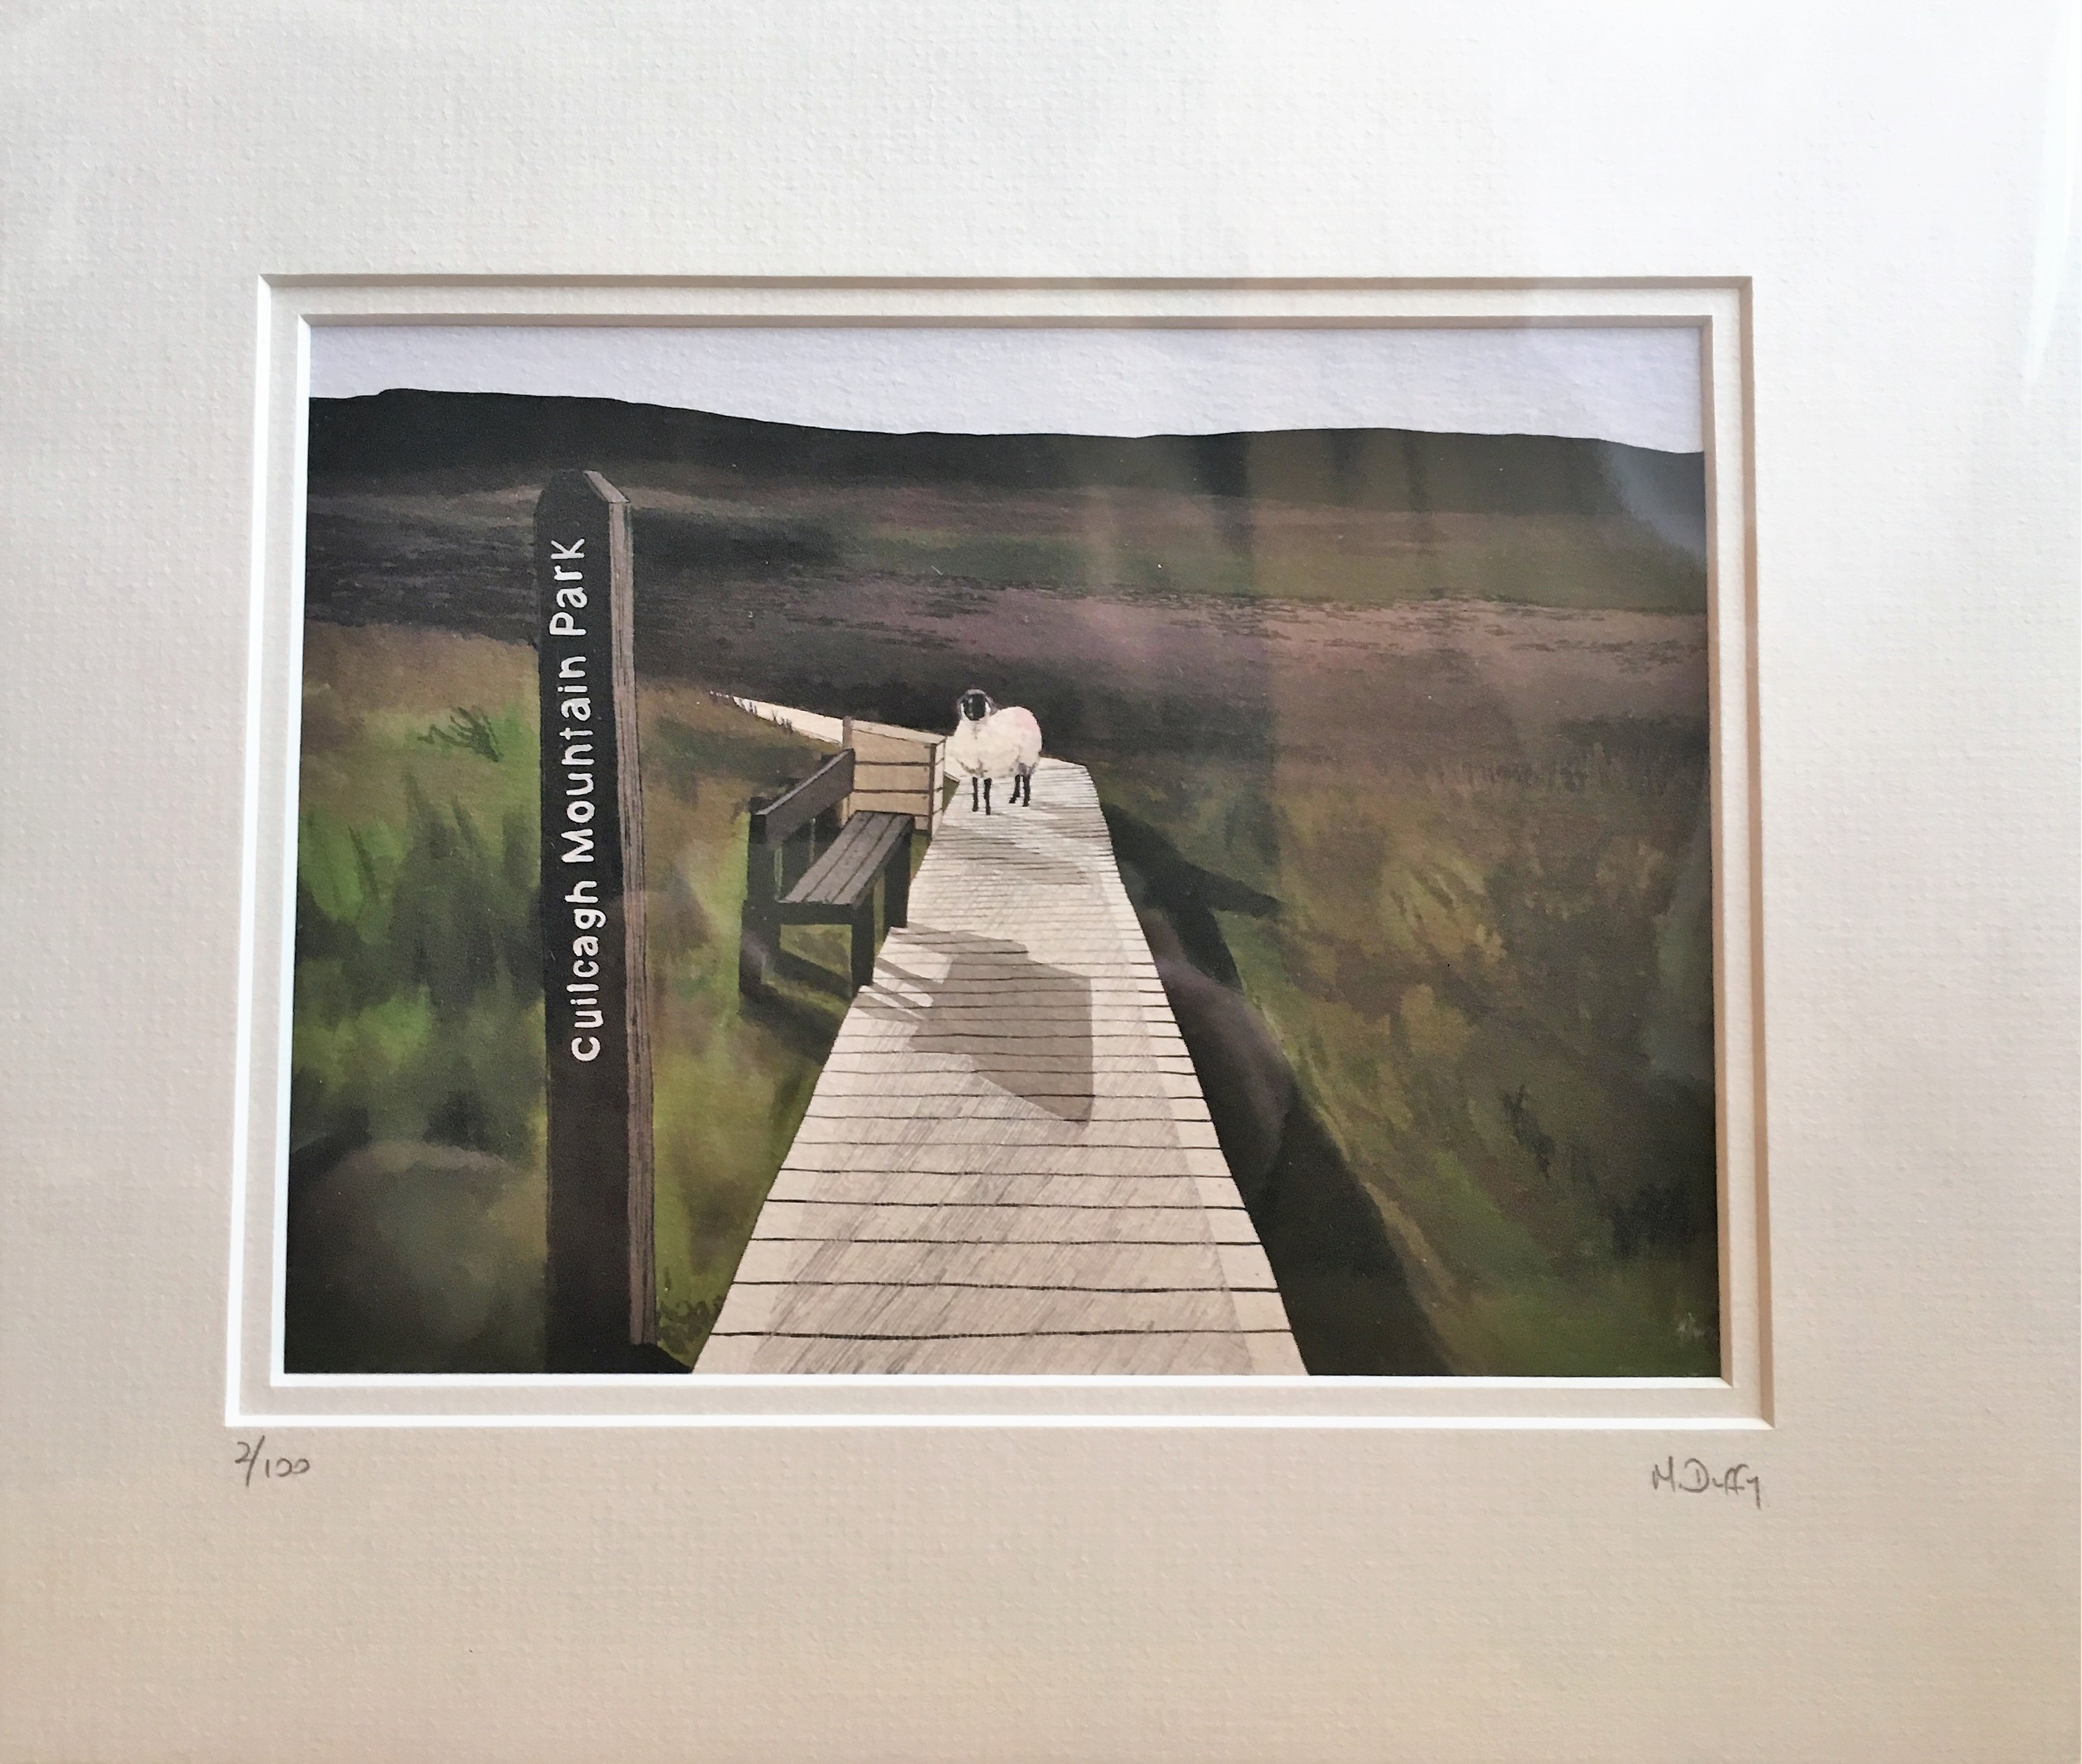 Cuilcagh Mountain Boardwalk, waymarker, bench and sheep. Fine art print by Michelle Duffy